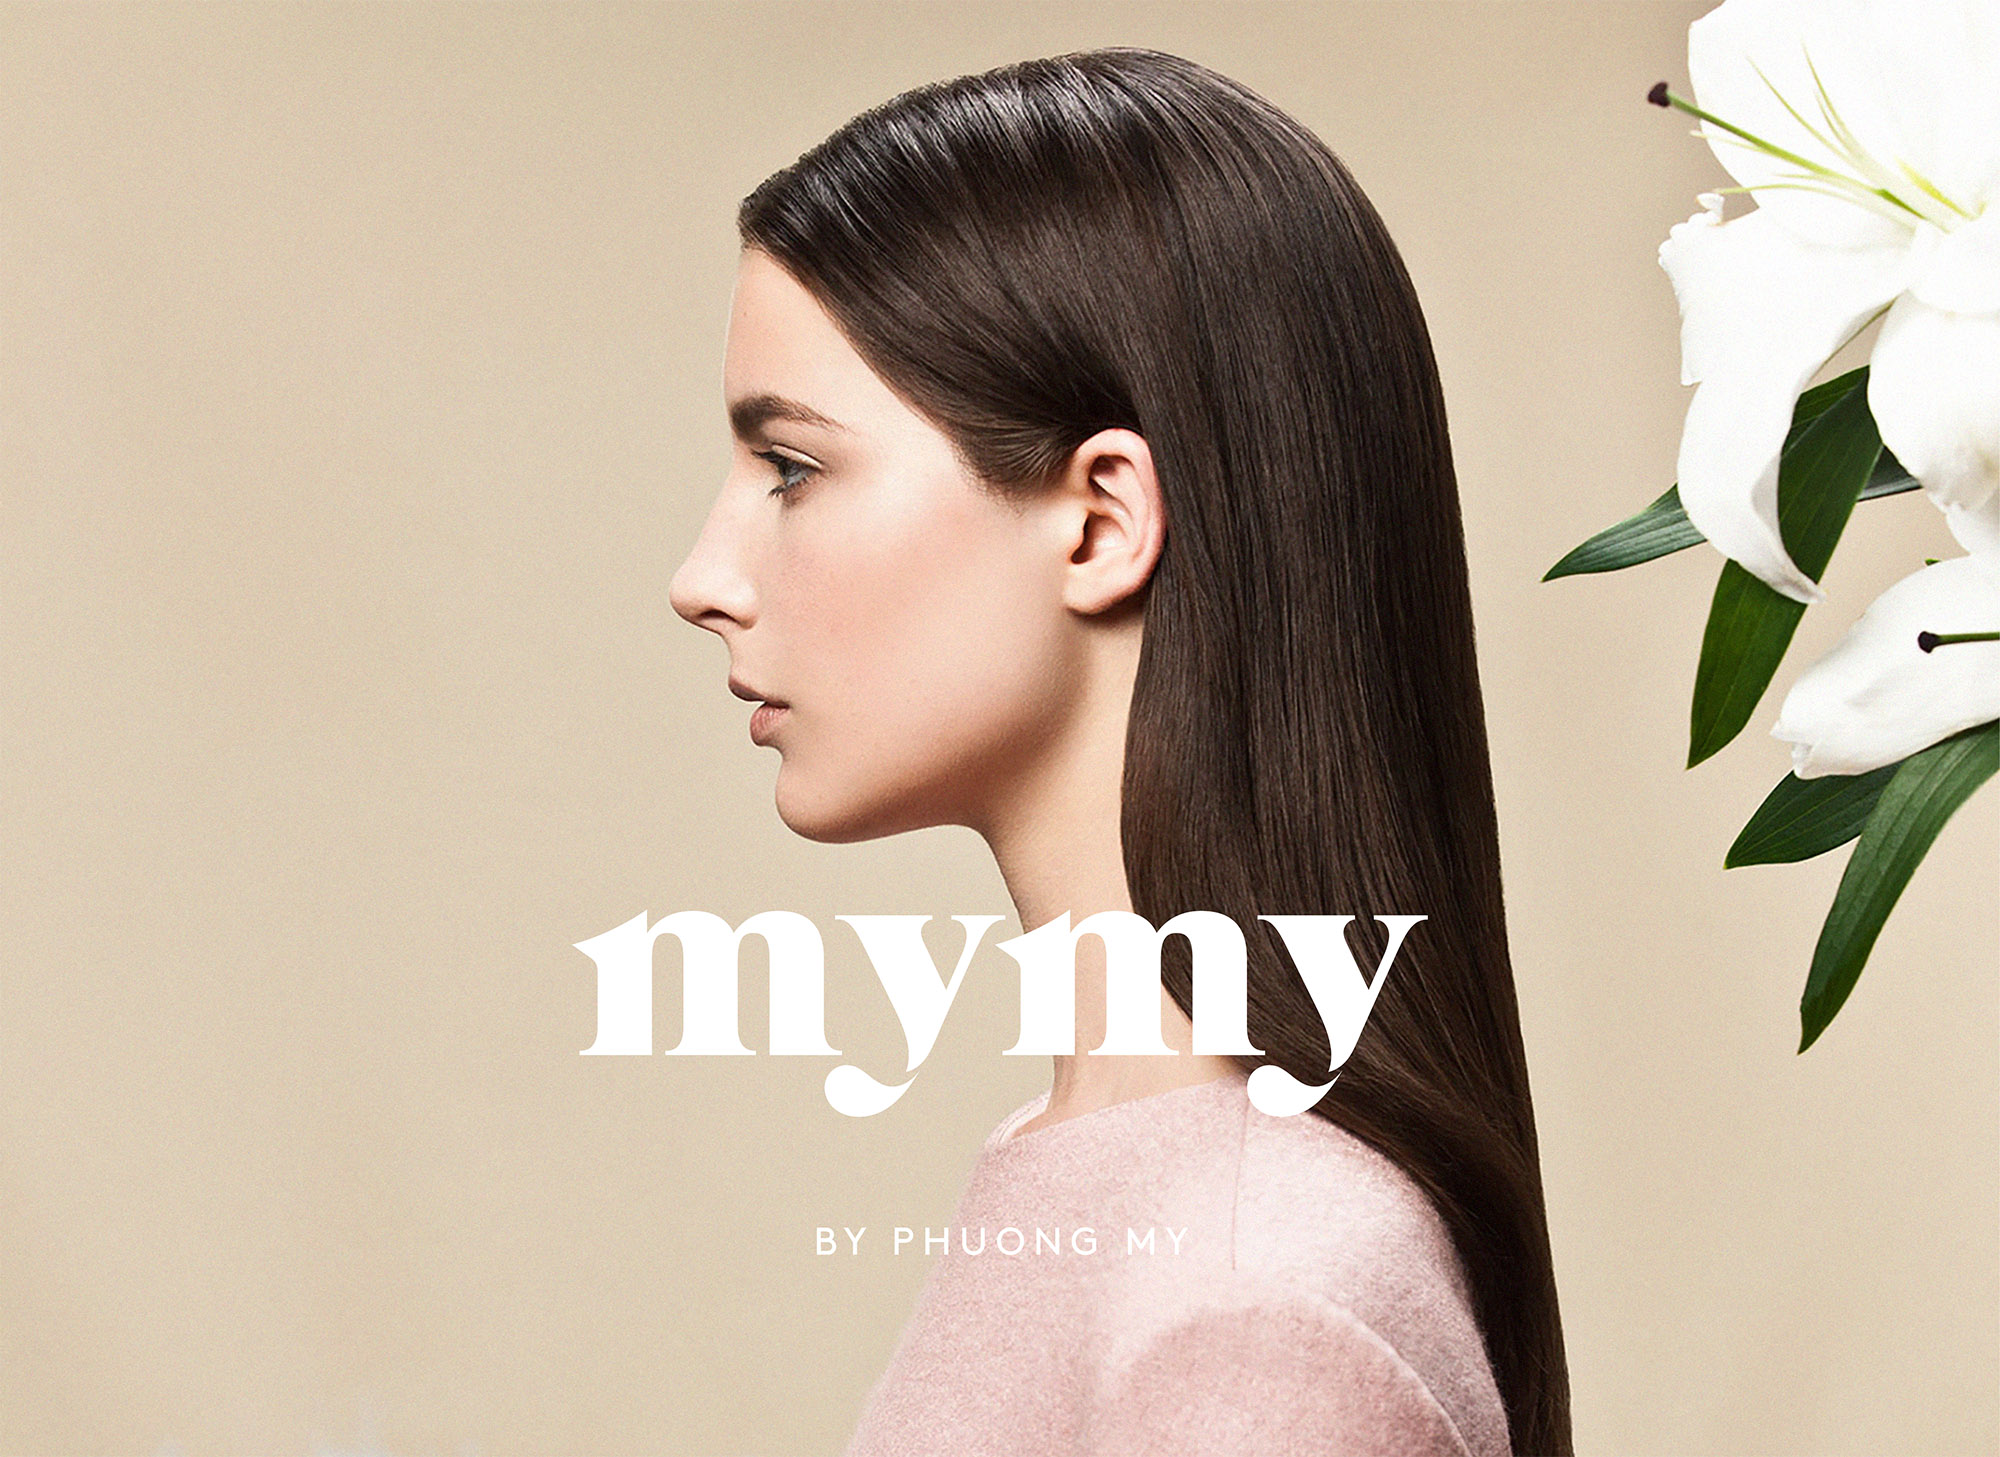 MYMY logo in front of girl with brown hair on a pink background